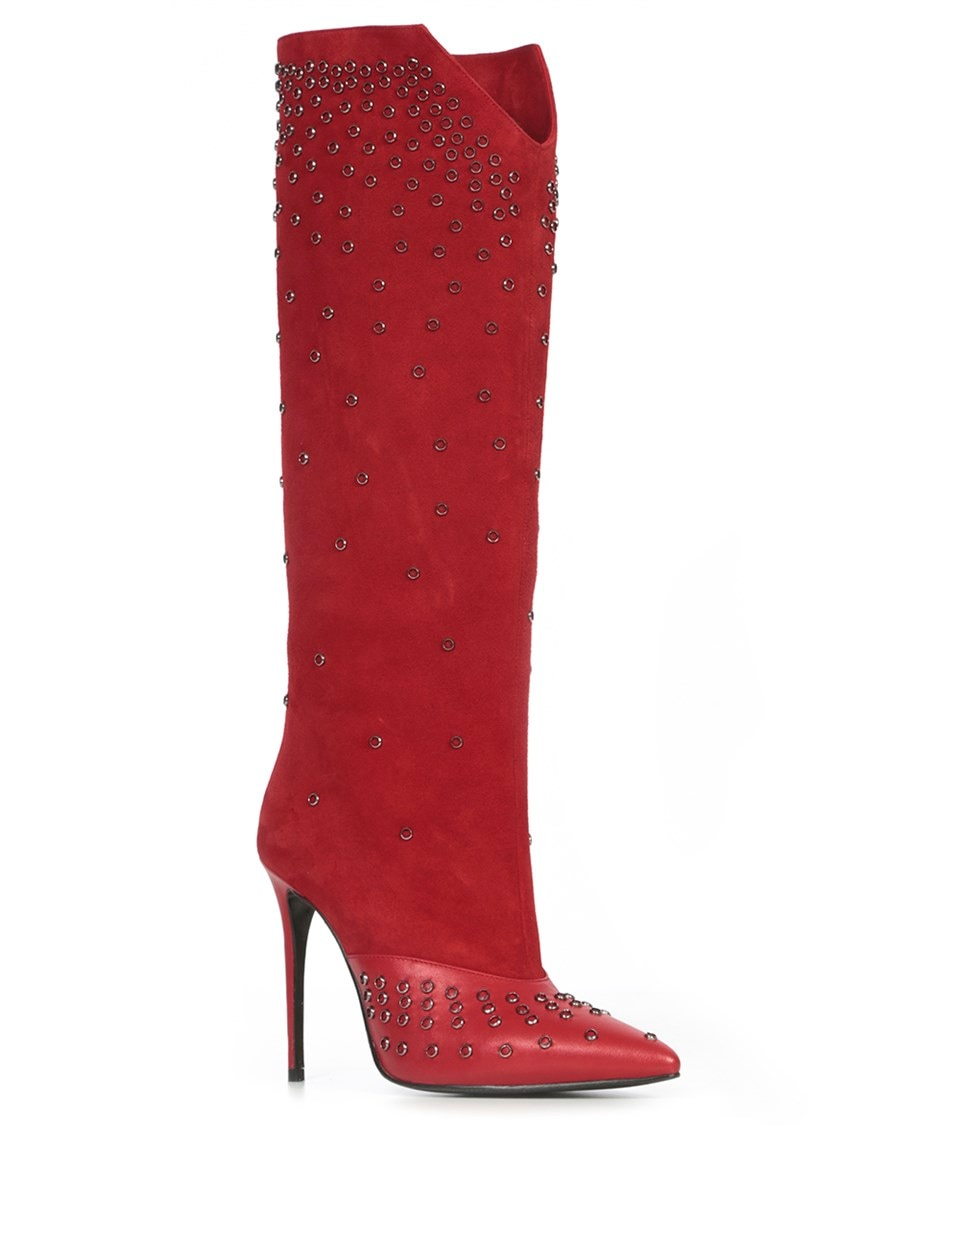 LV Paulina Women's Heeled High Boot Red Suede